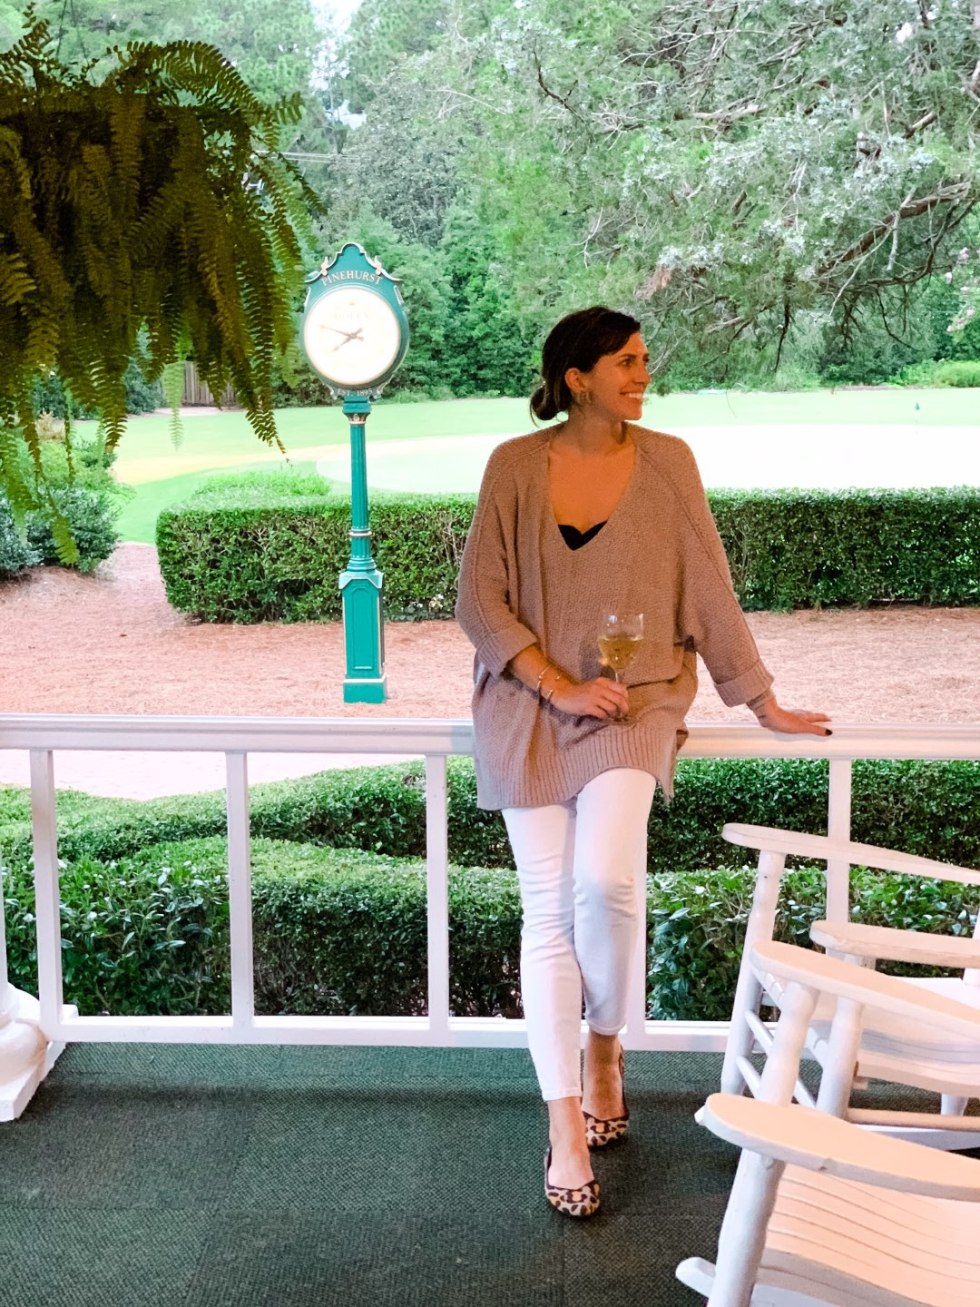 Top 10 Most Popular Blog Posts of 2019 - I'm Fixin' To - @mbg0112 | Top 10 Most Popular Blog Posts of 2019 by popular North Carolina life and style blog, I'm Fixin' To: image of a woman standing outside at Pinehurst, North Carolina.